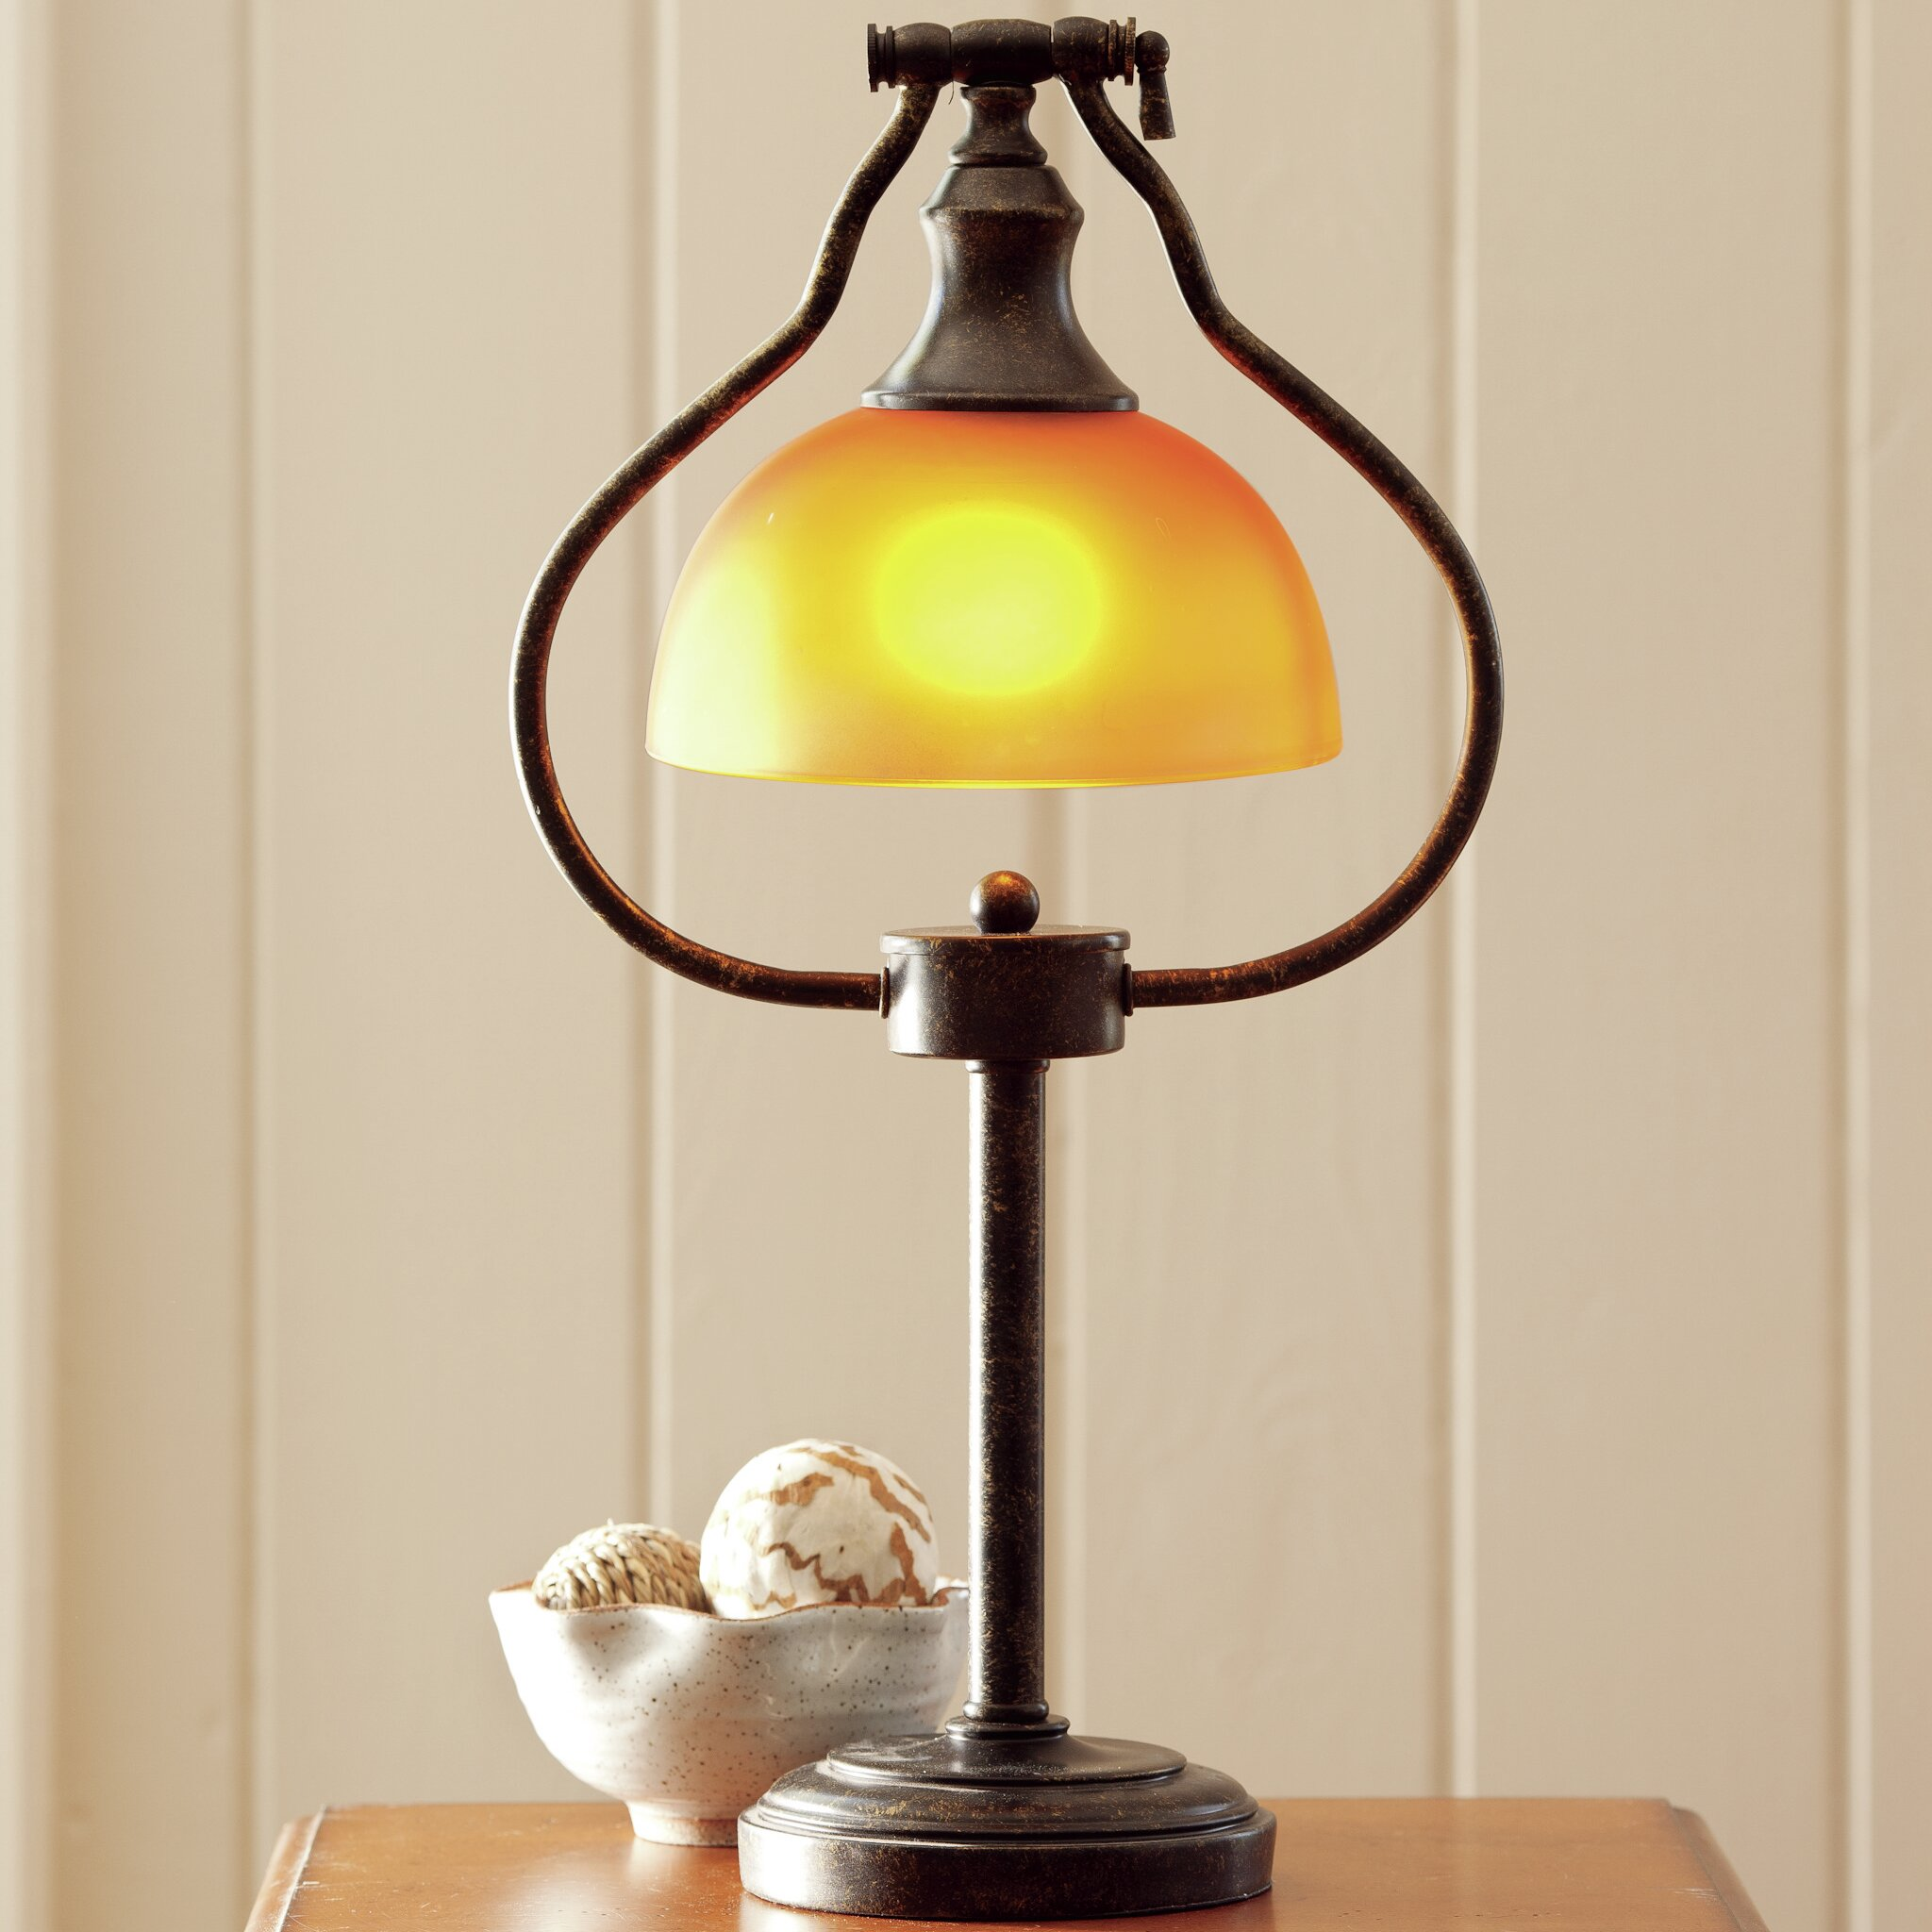 Plow Amp Hearth Library 21 25 Quot Table Lamp Amp Reviews Wayfair